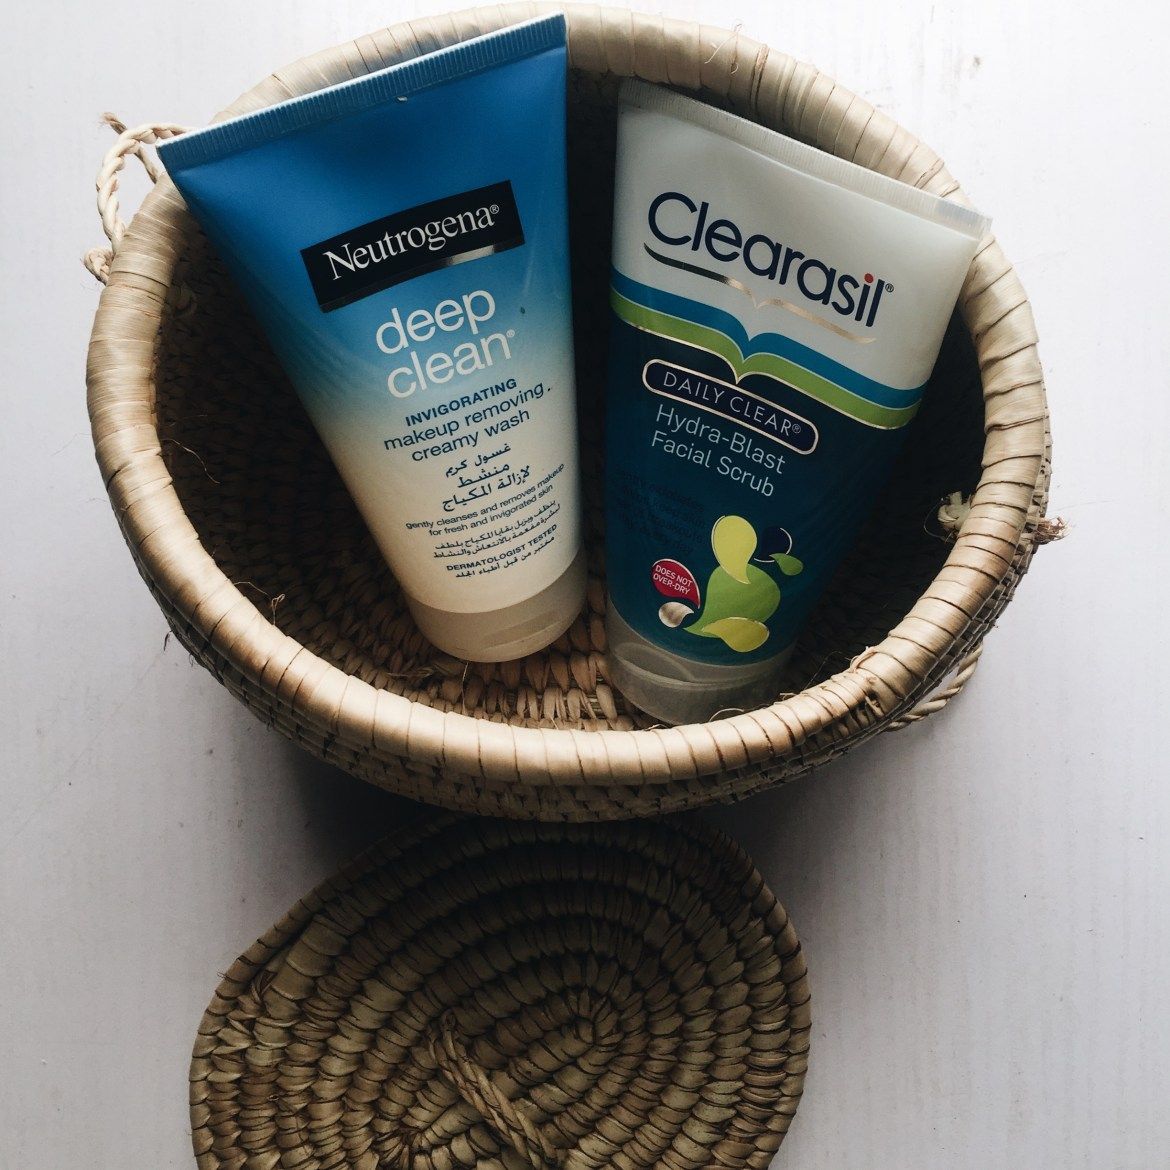 Clearasil and Neutrogena Skincare products